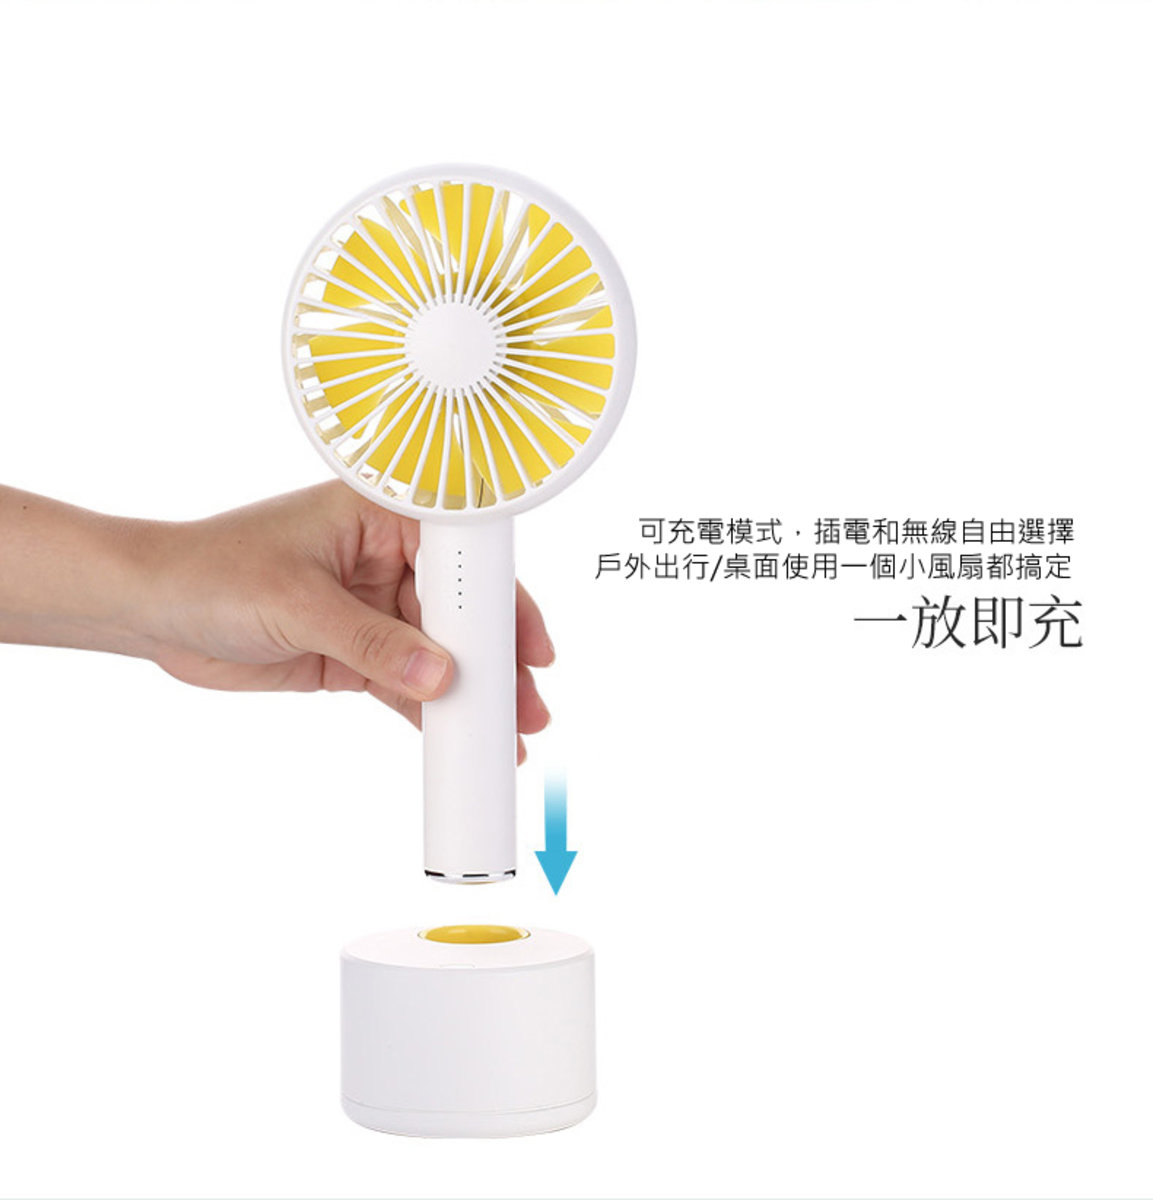 F812 Snow White Wireless Charging Fan Seat Handheld Automatic Moving Head Charging Base